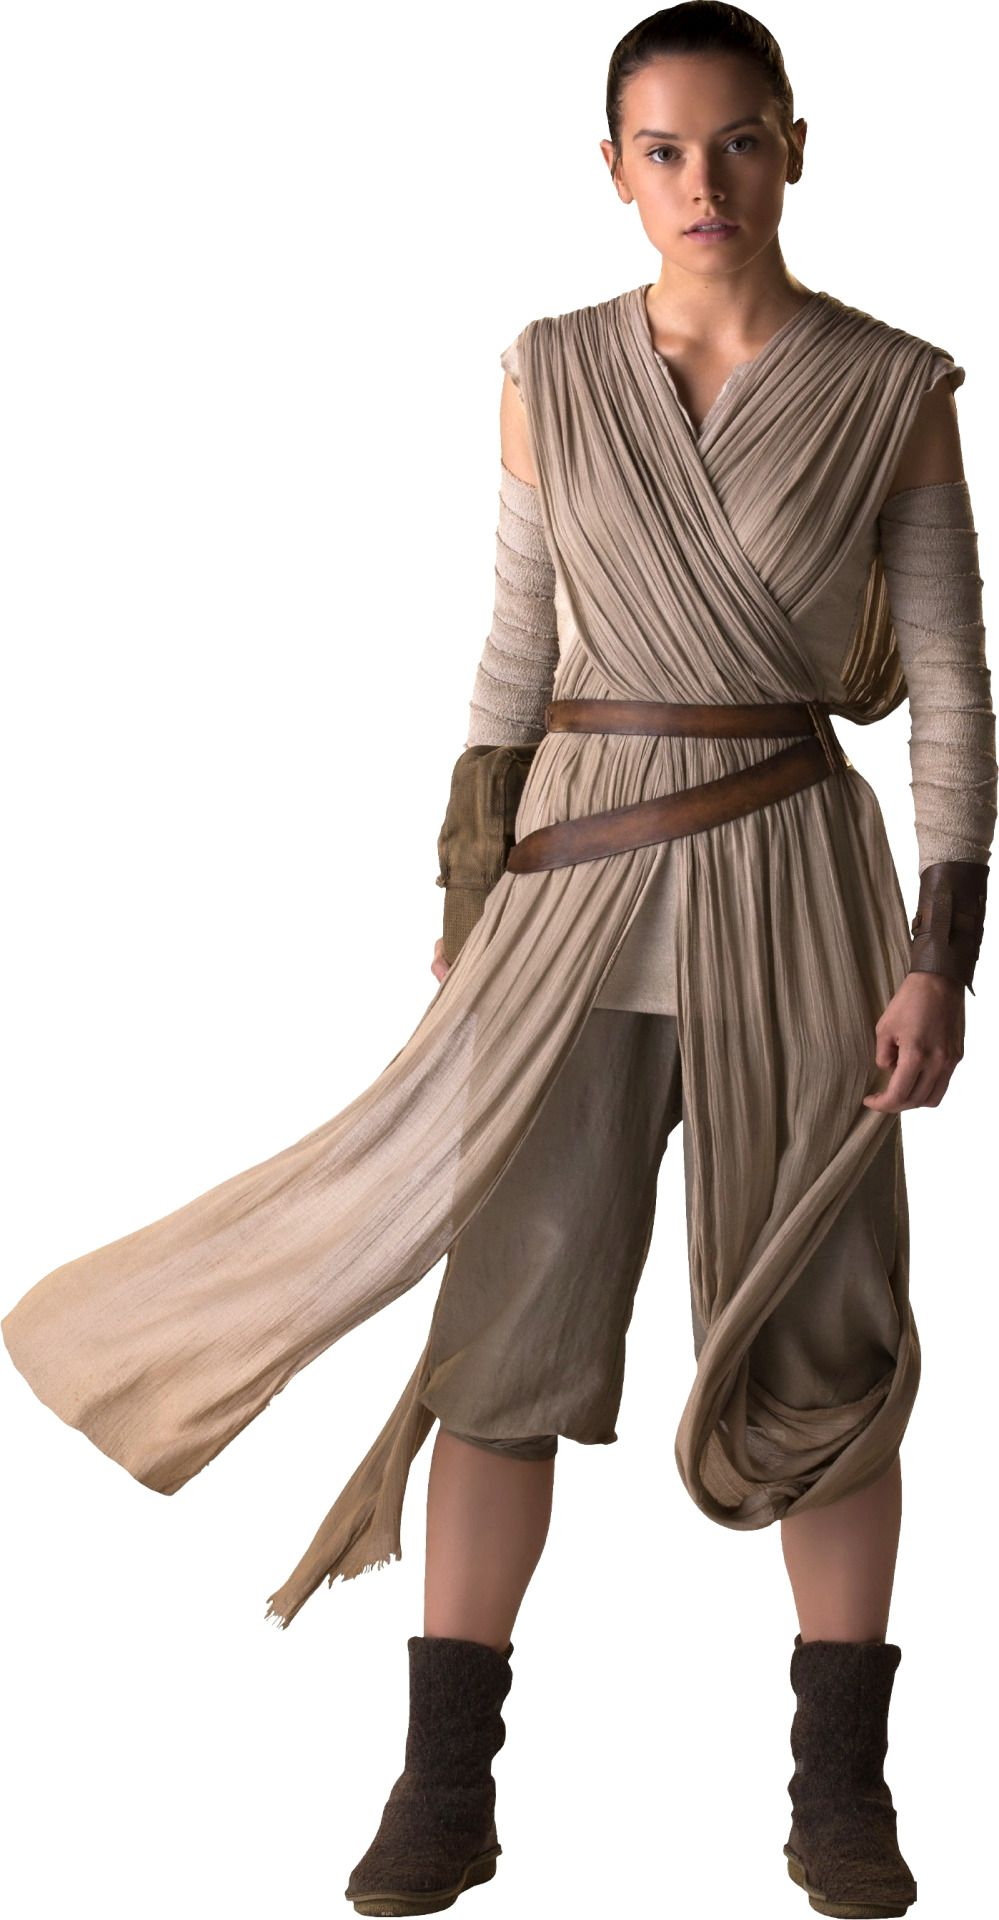 The Force Awakens Cosplay Luke Skywalker Costume Original Ver Outfits Star Wars